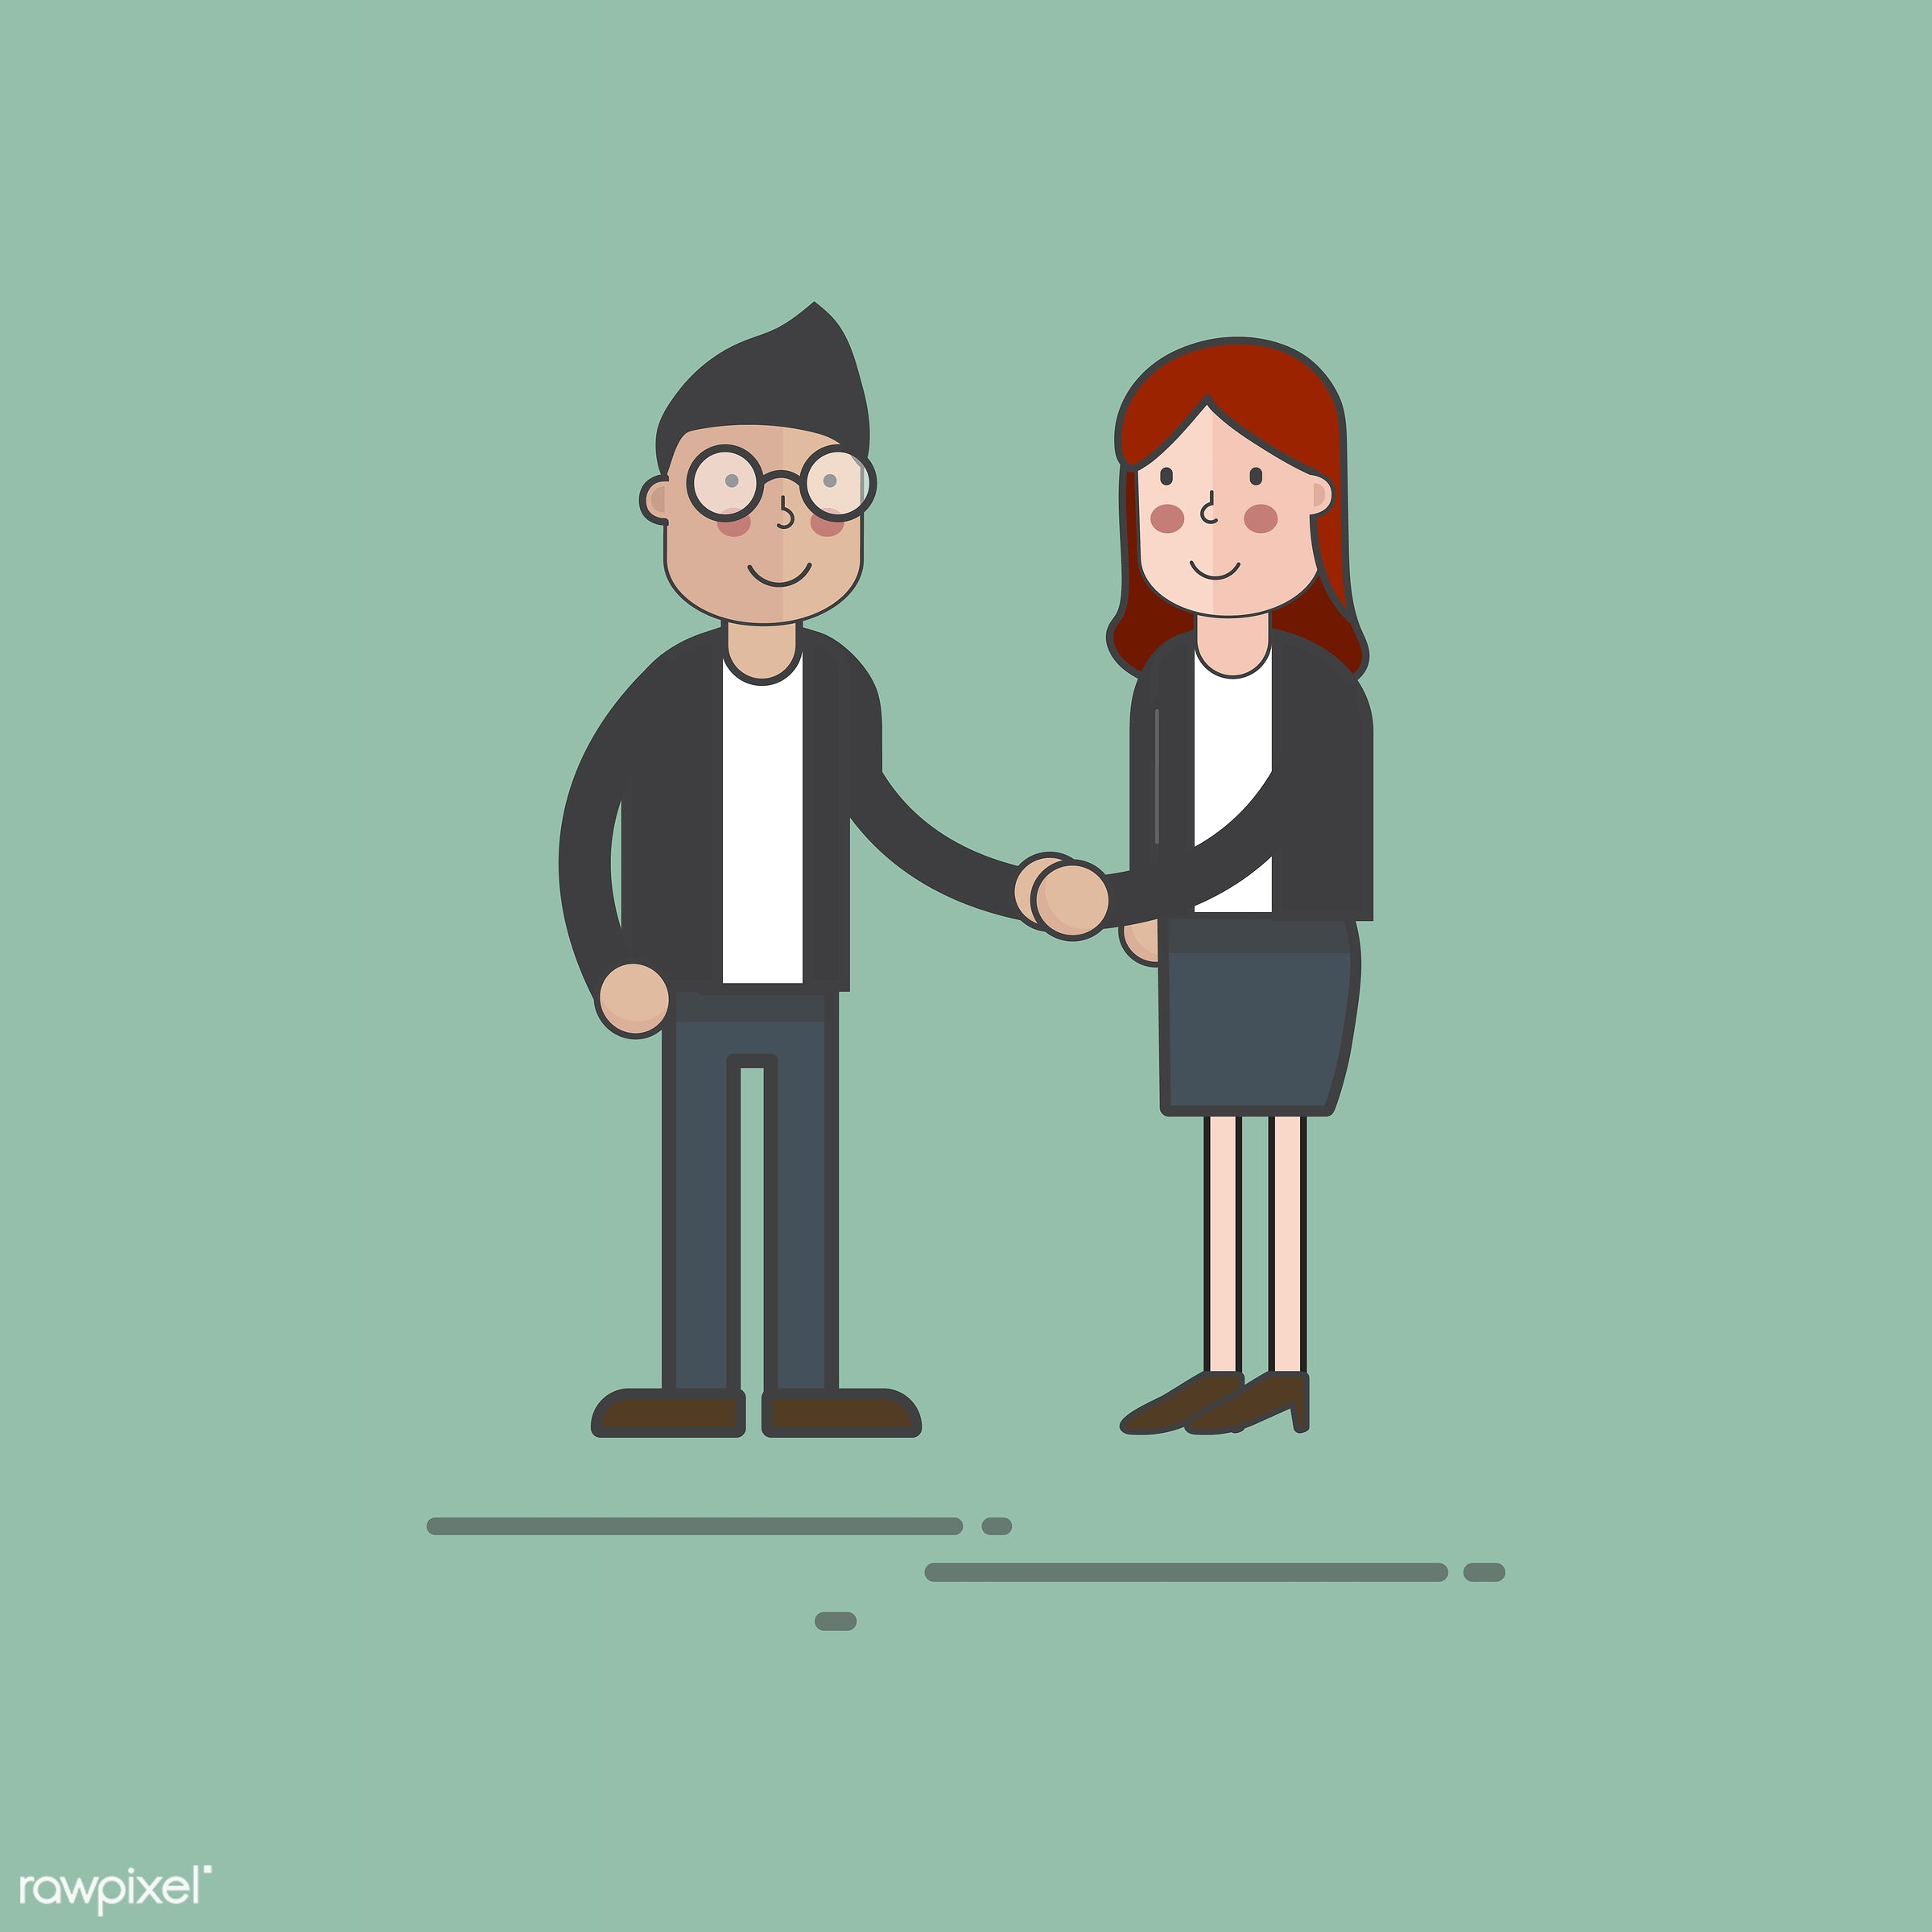 Illustration of people avatar - avatar, cartoon, character, couple, drawing, emotion, graphic, greeting, handshake,...